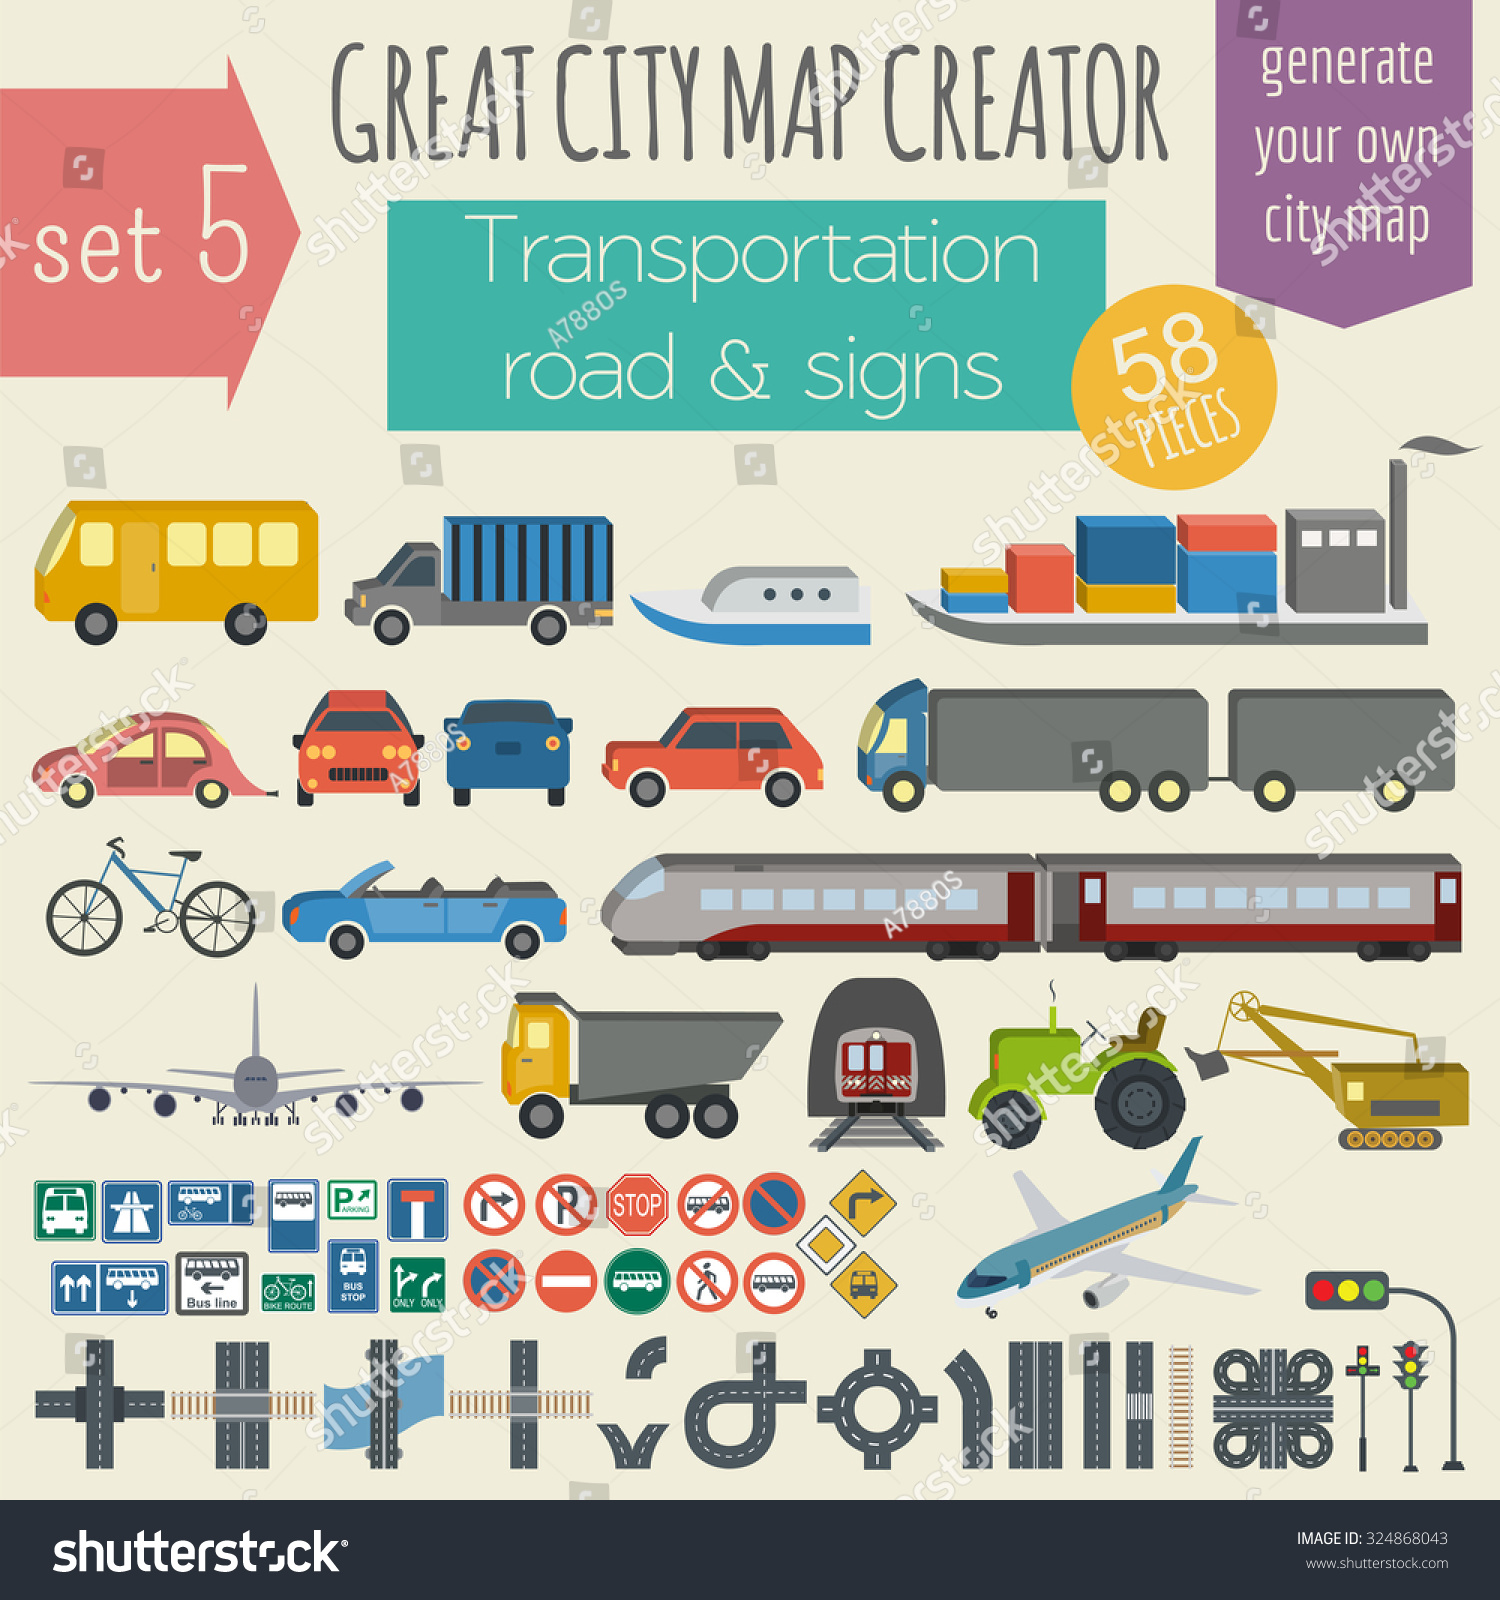 Great city map creator house constructor house cafe for House map creator